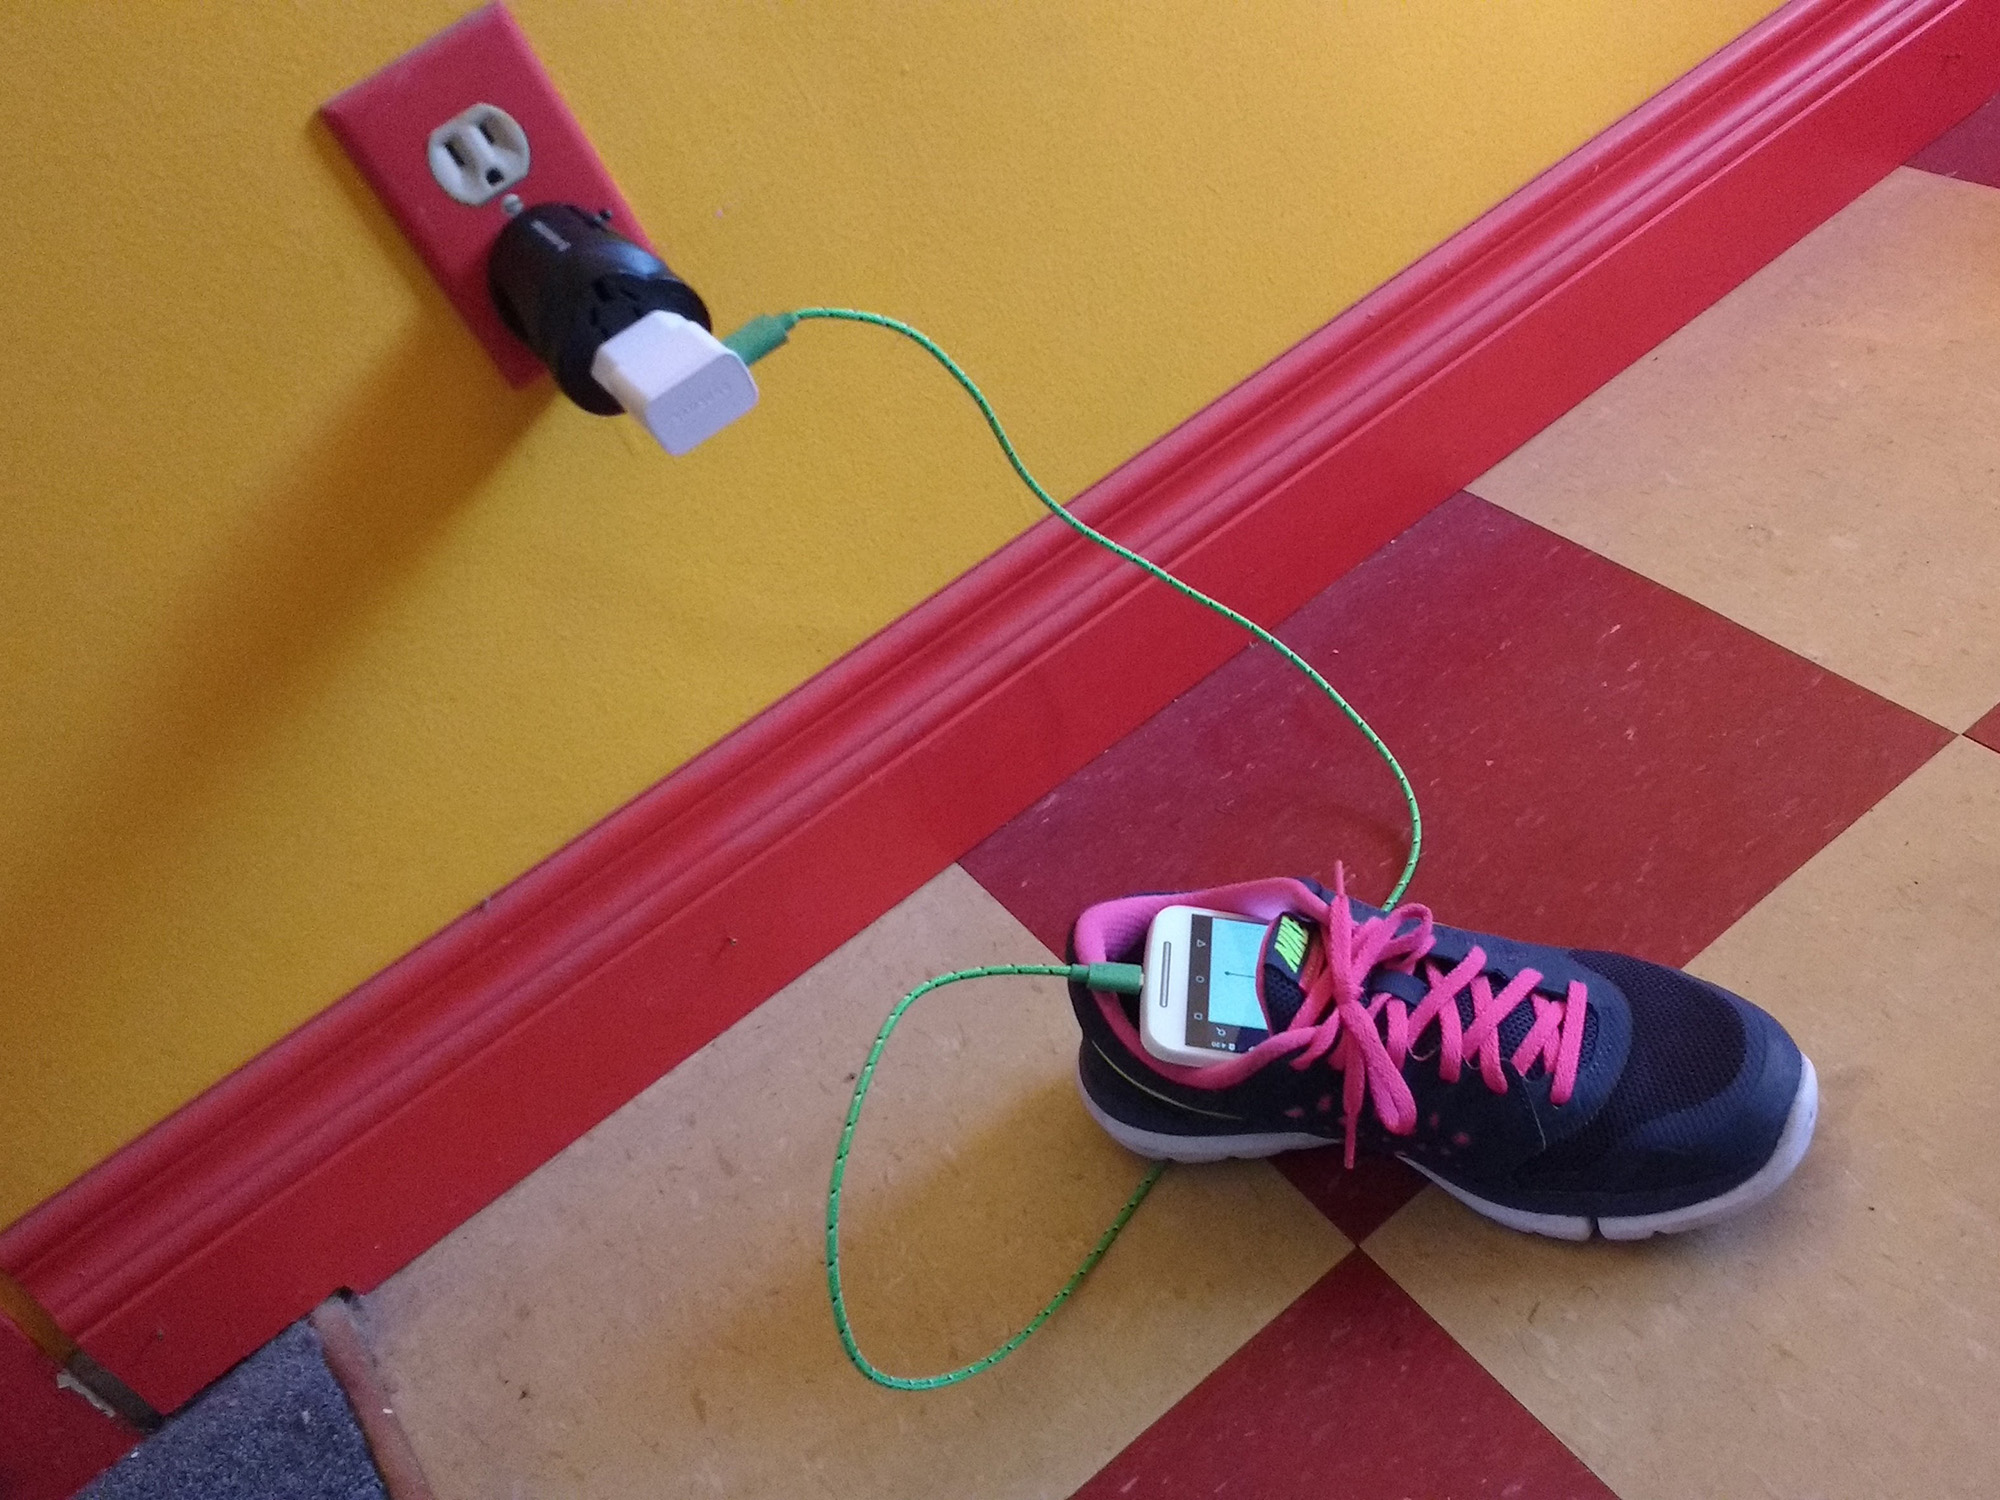 Image of USB-to-AC and European-to-American power adapters plugged into wall current and charging a phone which rests in a running shoe